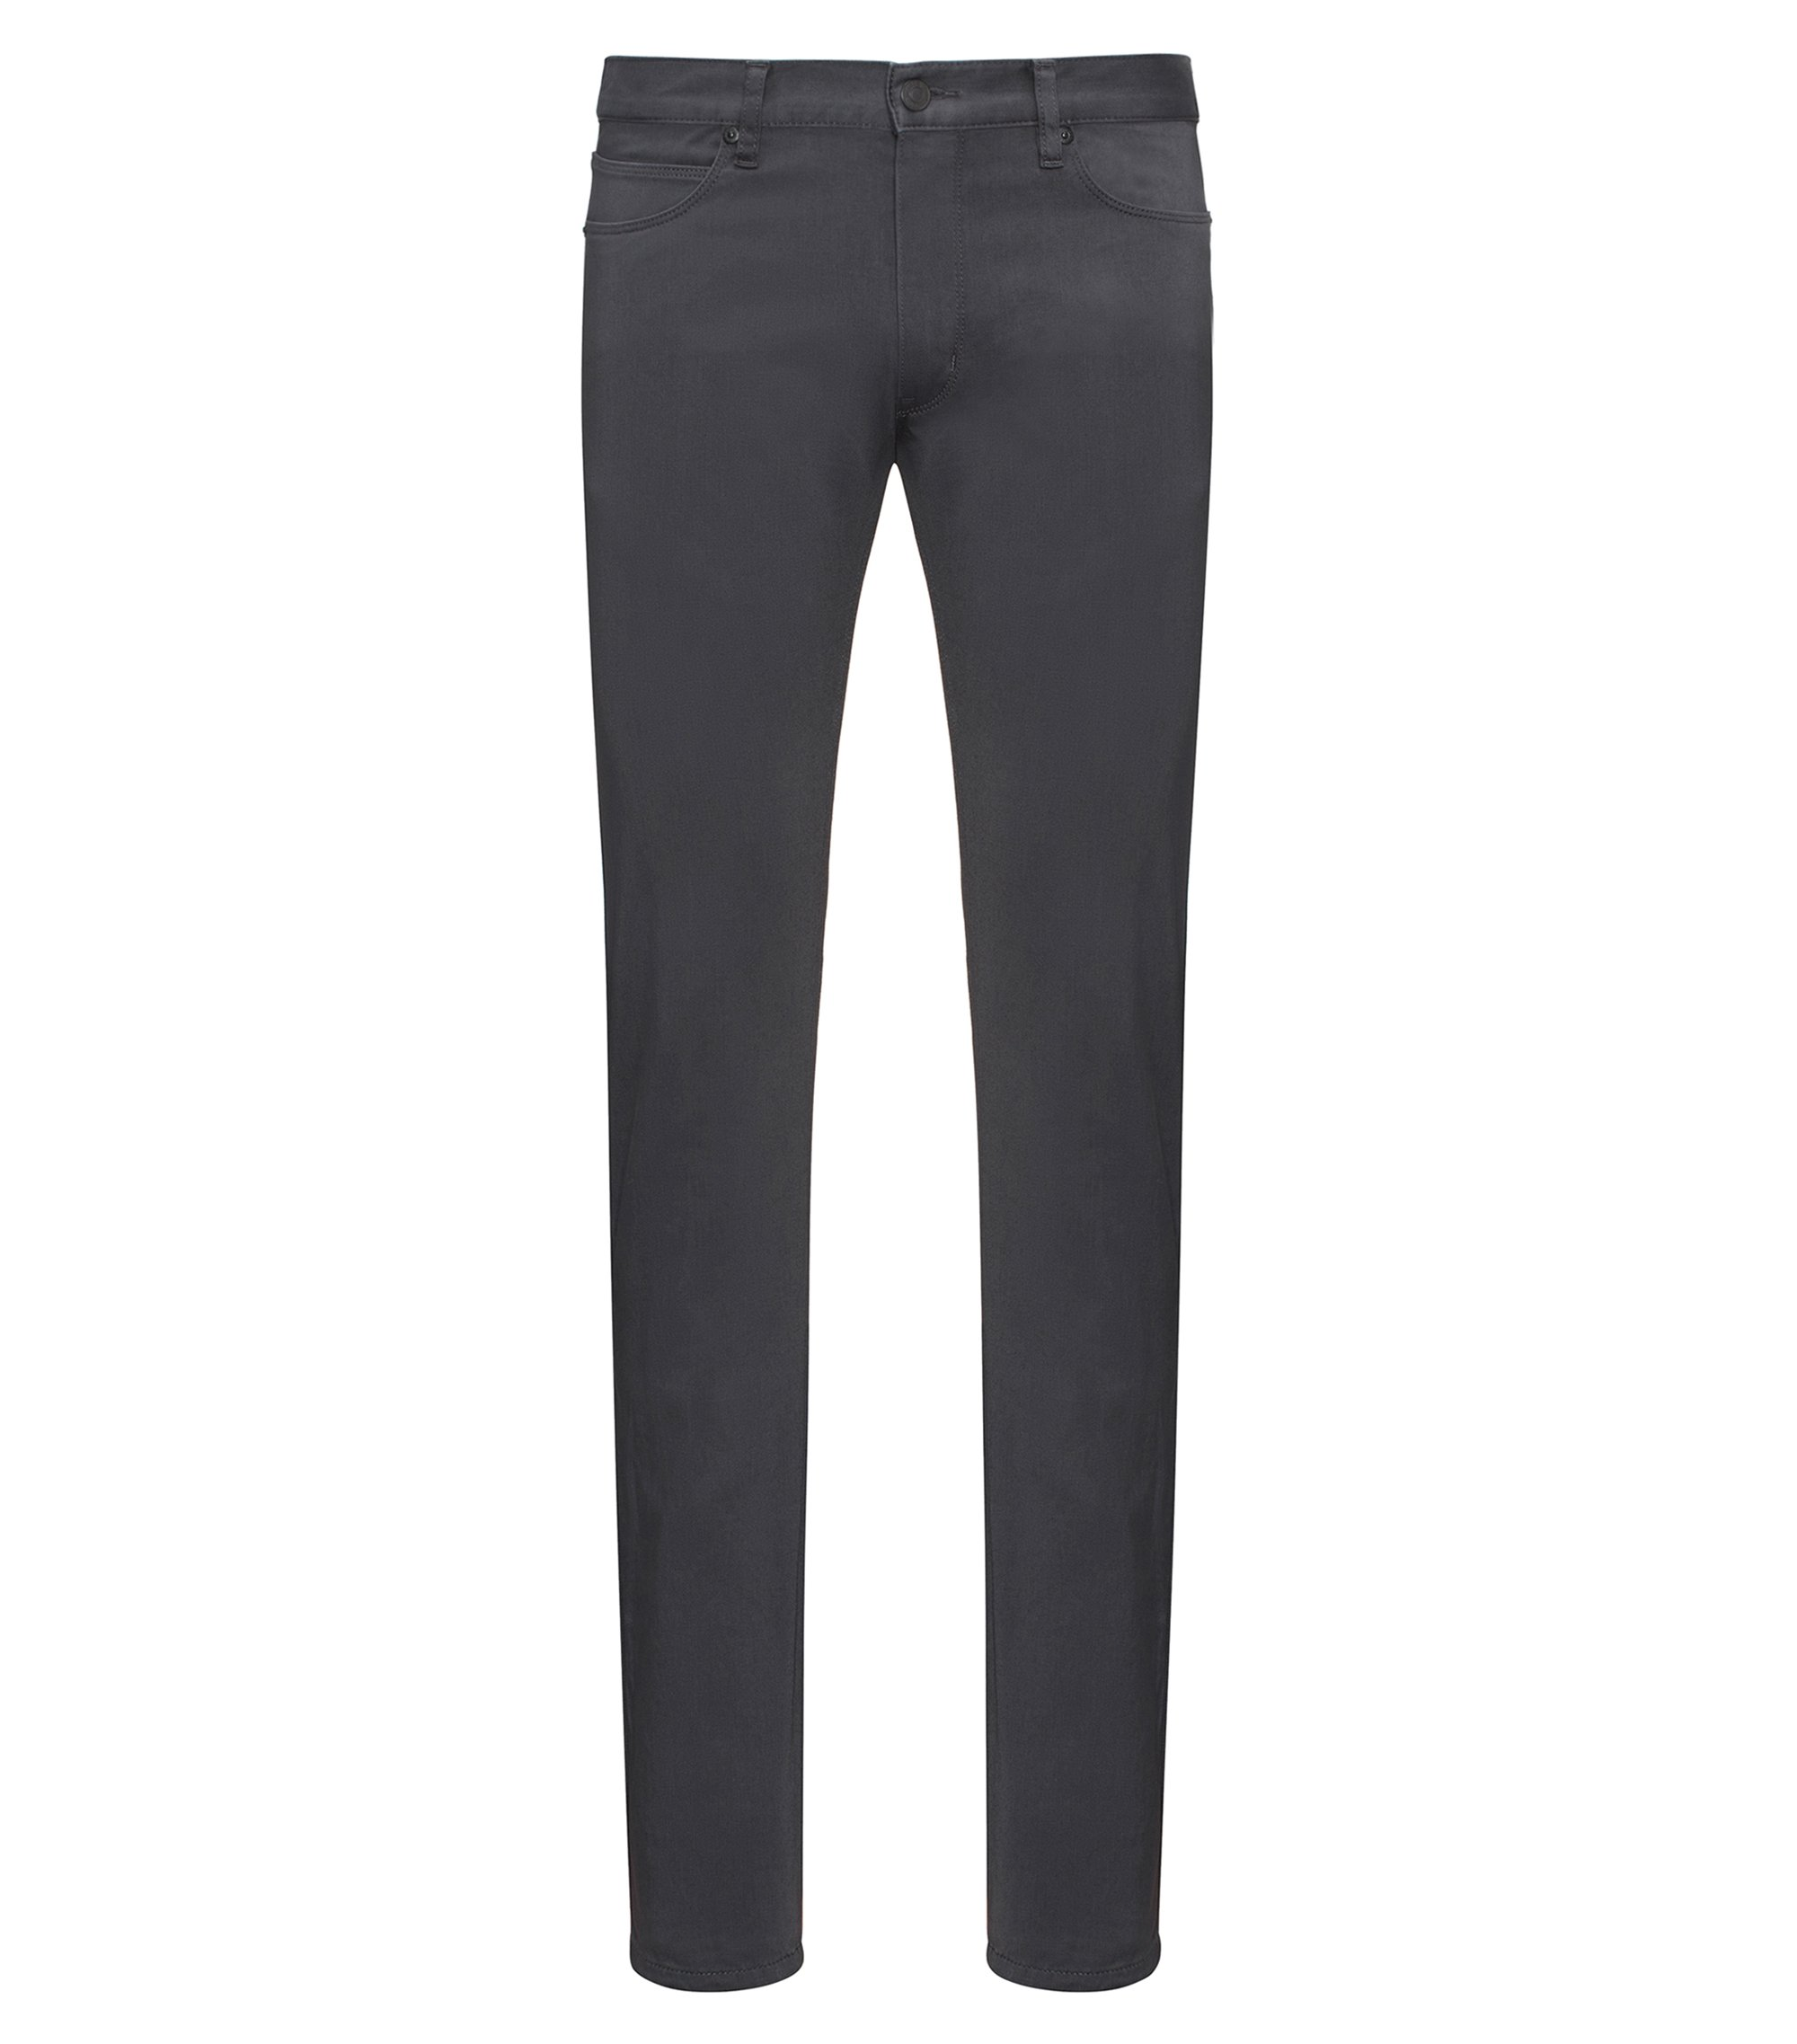 Jeans scuri slim fit in denim elasticizzato, Grigio scuro